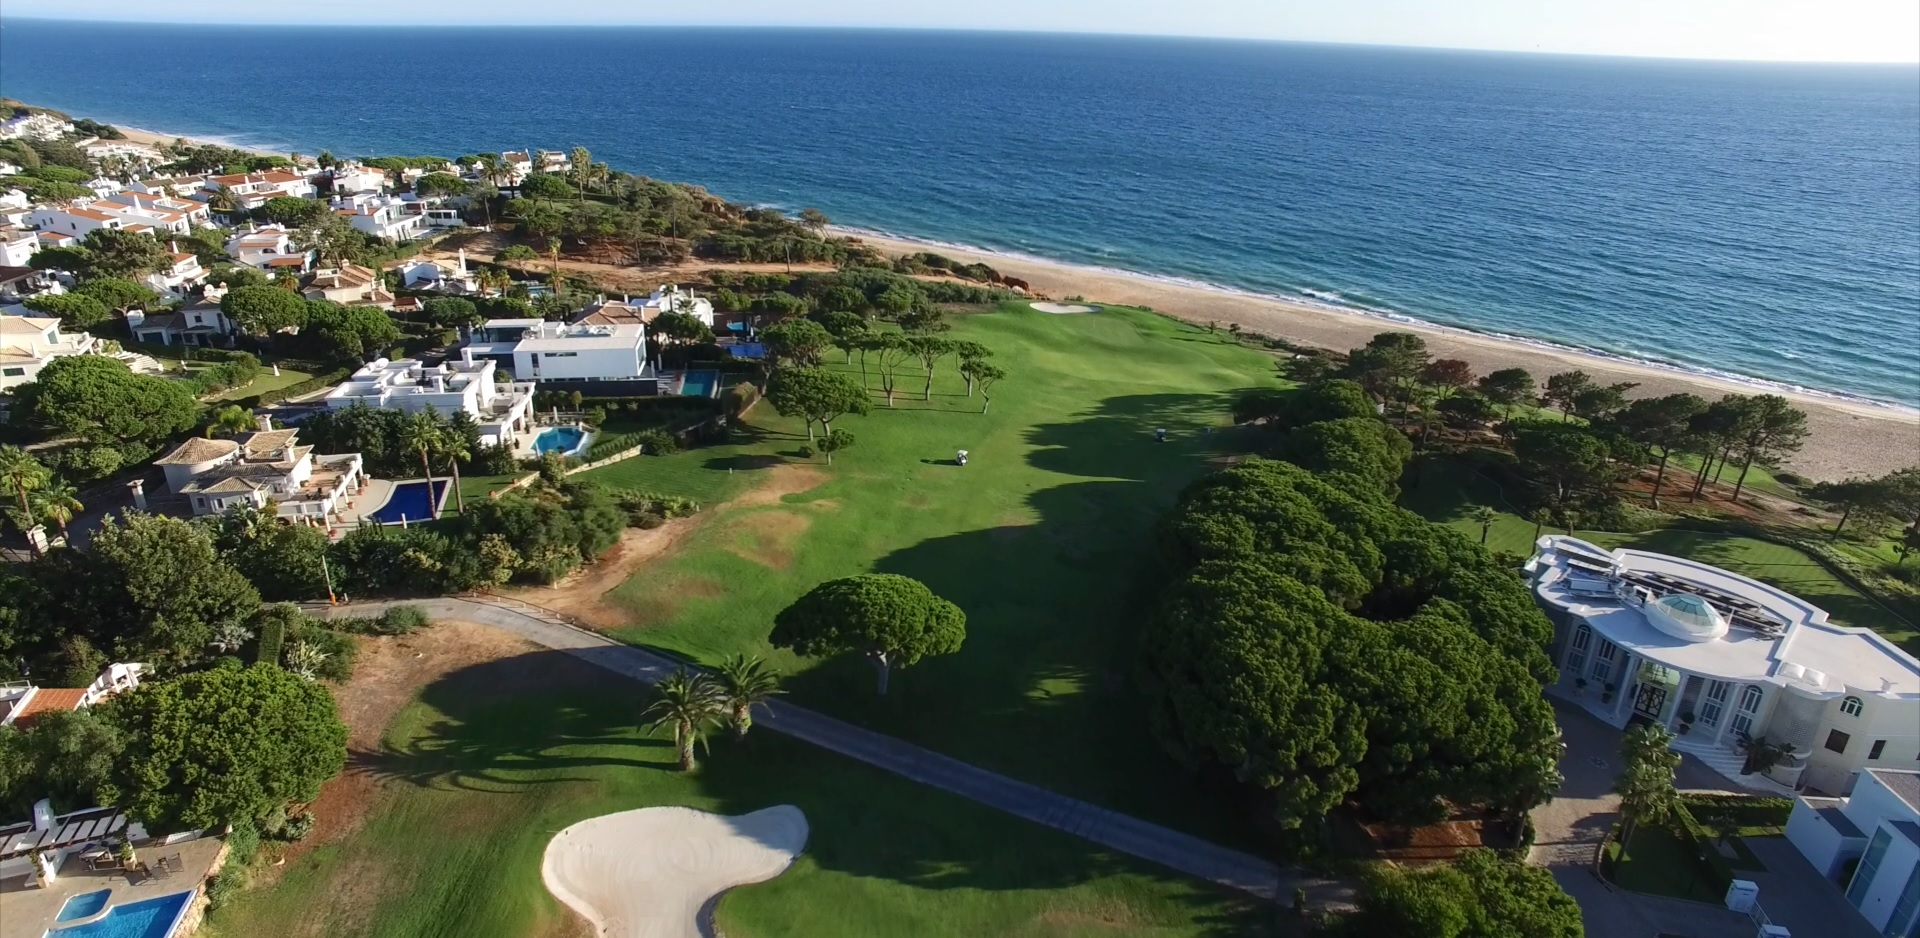 Real estate in Almancil - Engel&Völkers-Quinta do Lago - Vale do Lobo (3).jpg